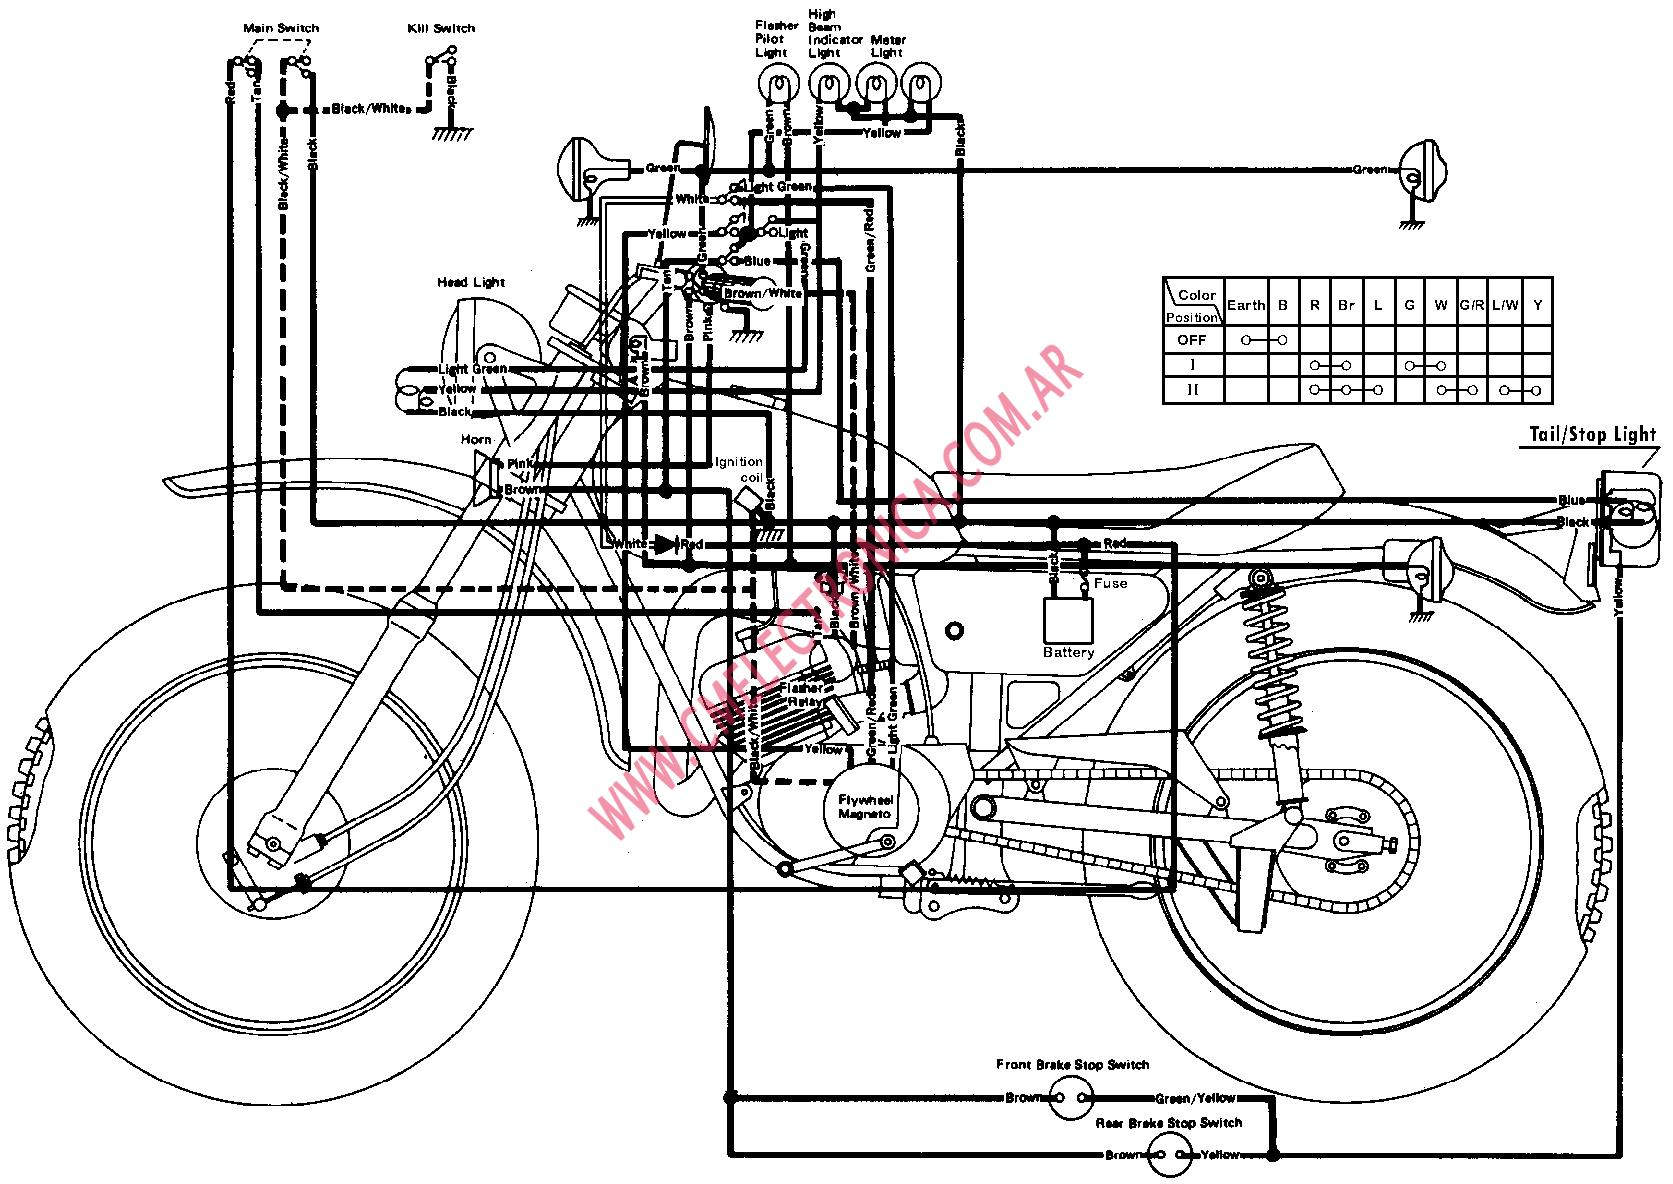 Wiring Diagram For 1974 Yamaha Dt 175a on